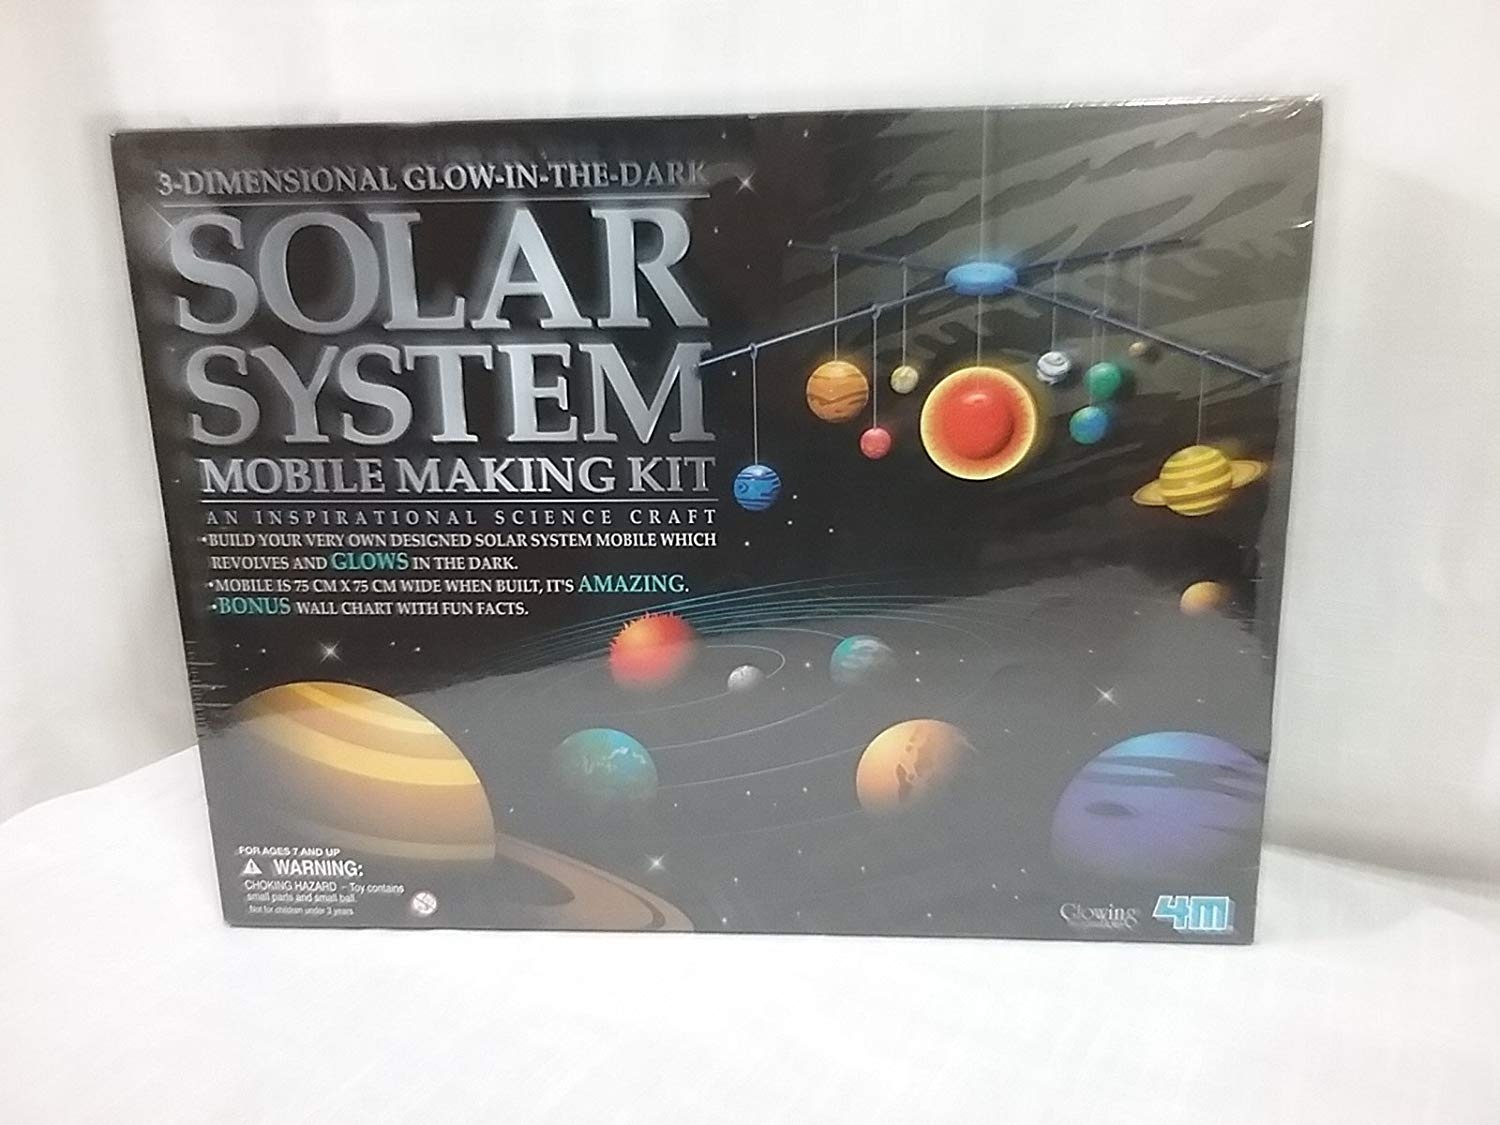 4M 3-DIMENSIONAL GLOW-IN-THE-DARK SOLAR SYSTEM MOBILE MAKING KIT by 4M